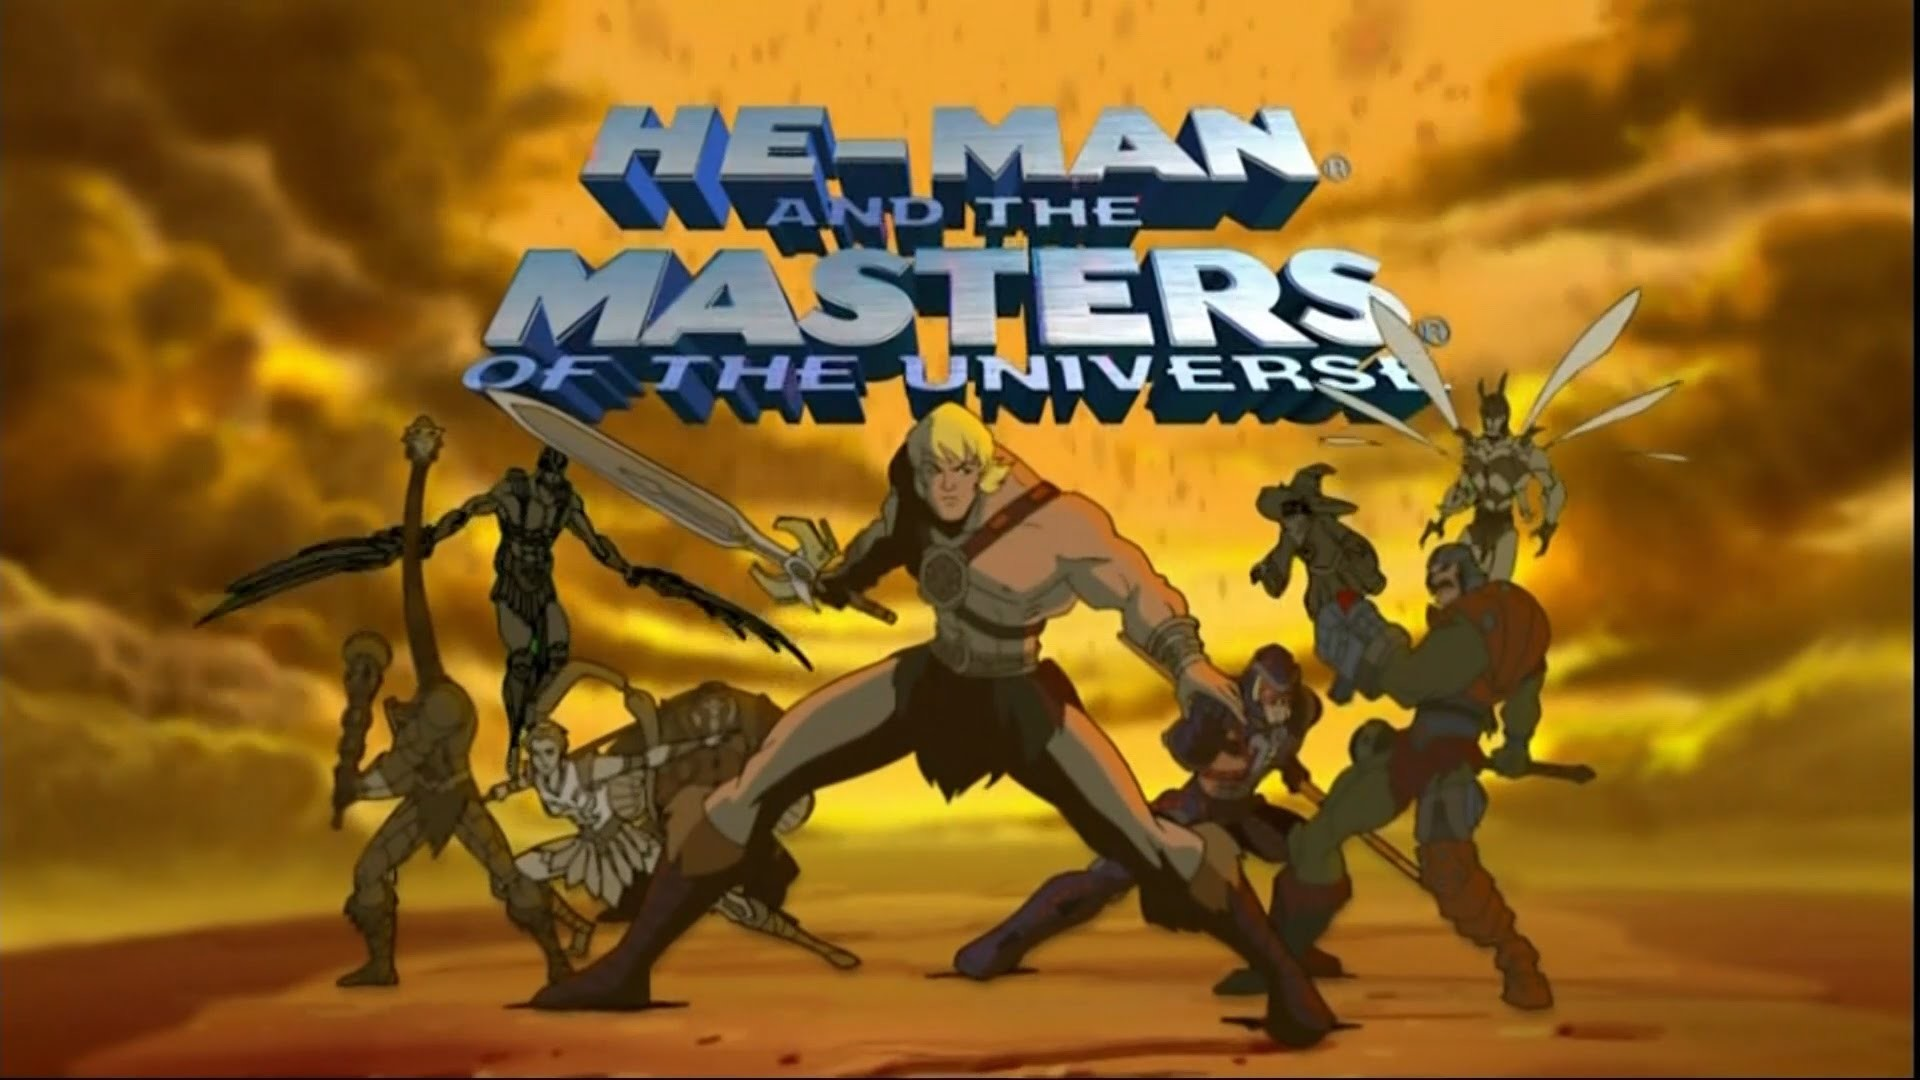 Awesome 80's Cartoon and TV Show Intros He-Man and the Masters of the  Universe, New Adventures. – YouTube